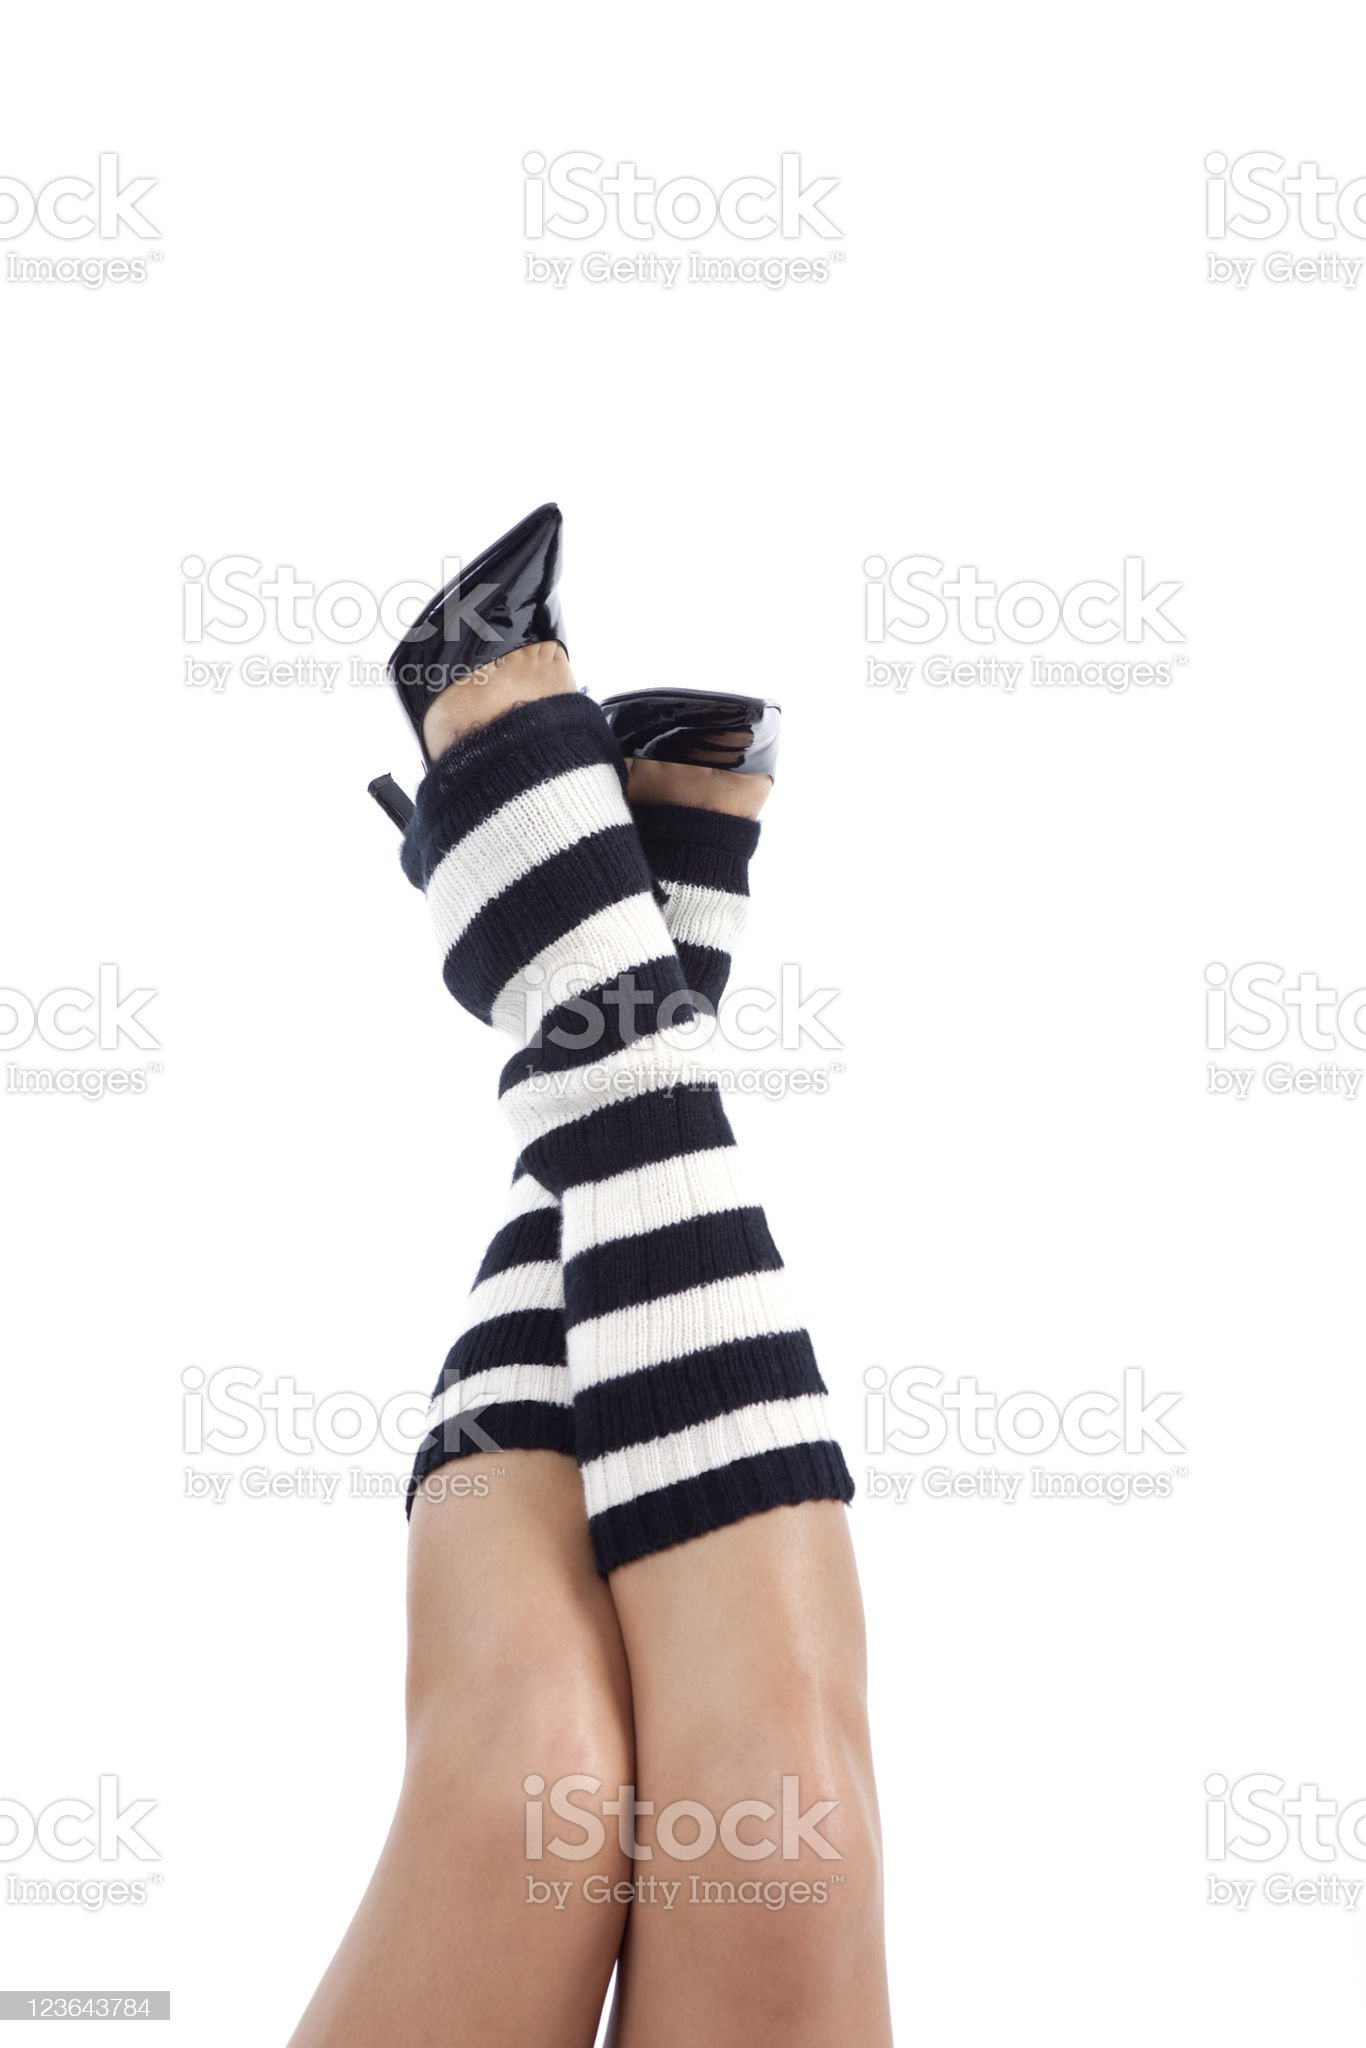 Crossed    Leg royalty-free stock photo